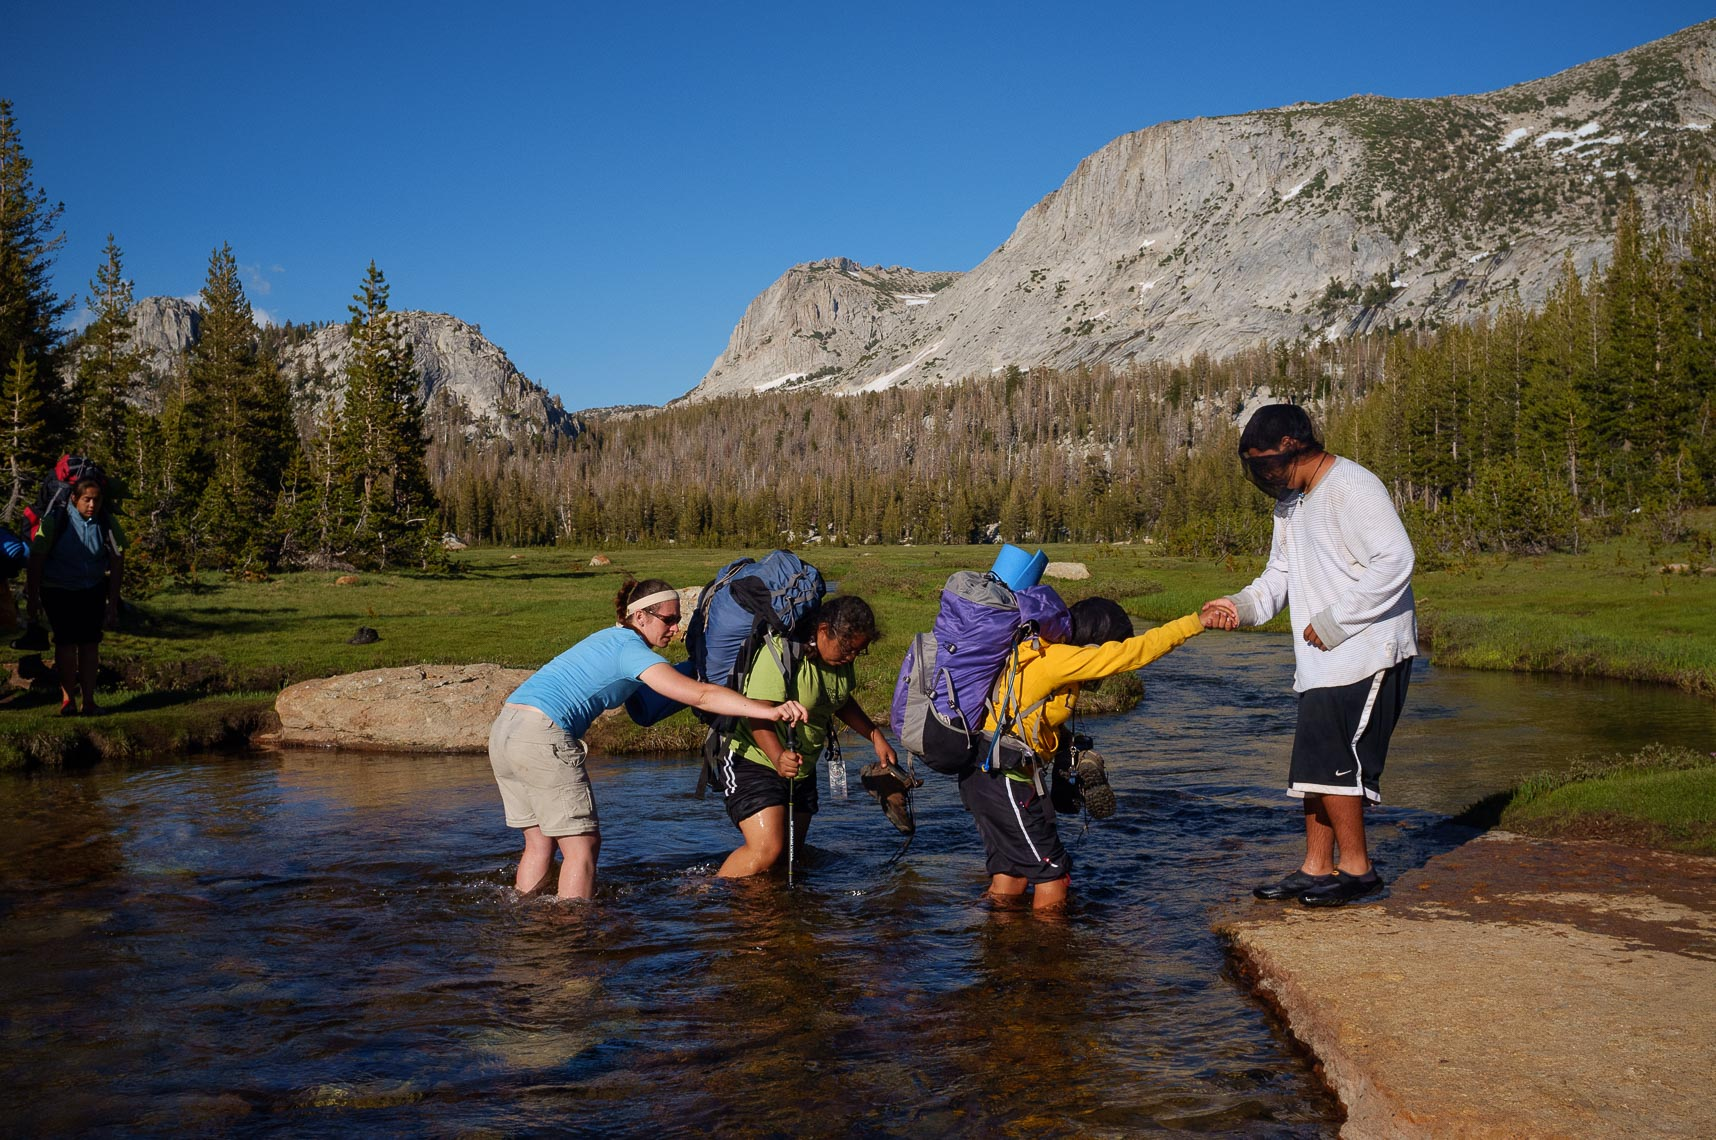 patrick_cavan_brown_woods_project_yosemite_camping_hiking_backpacking-4282